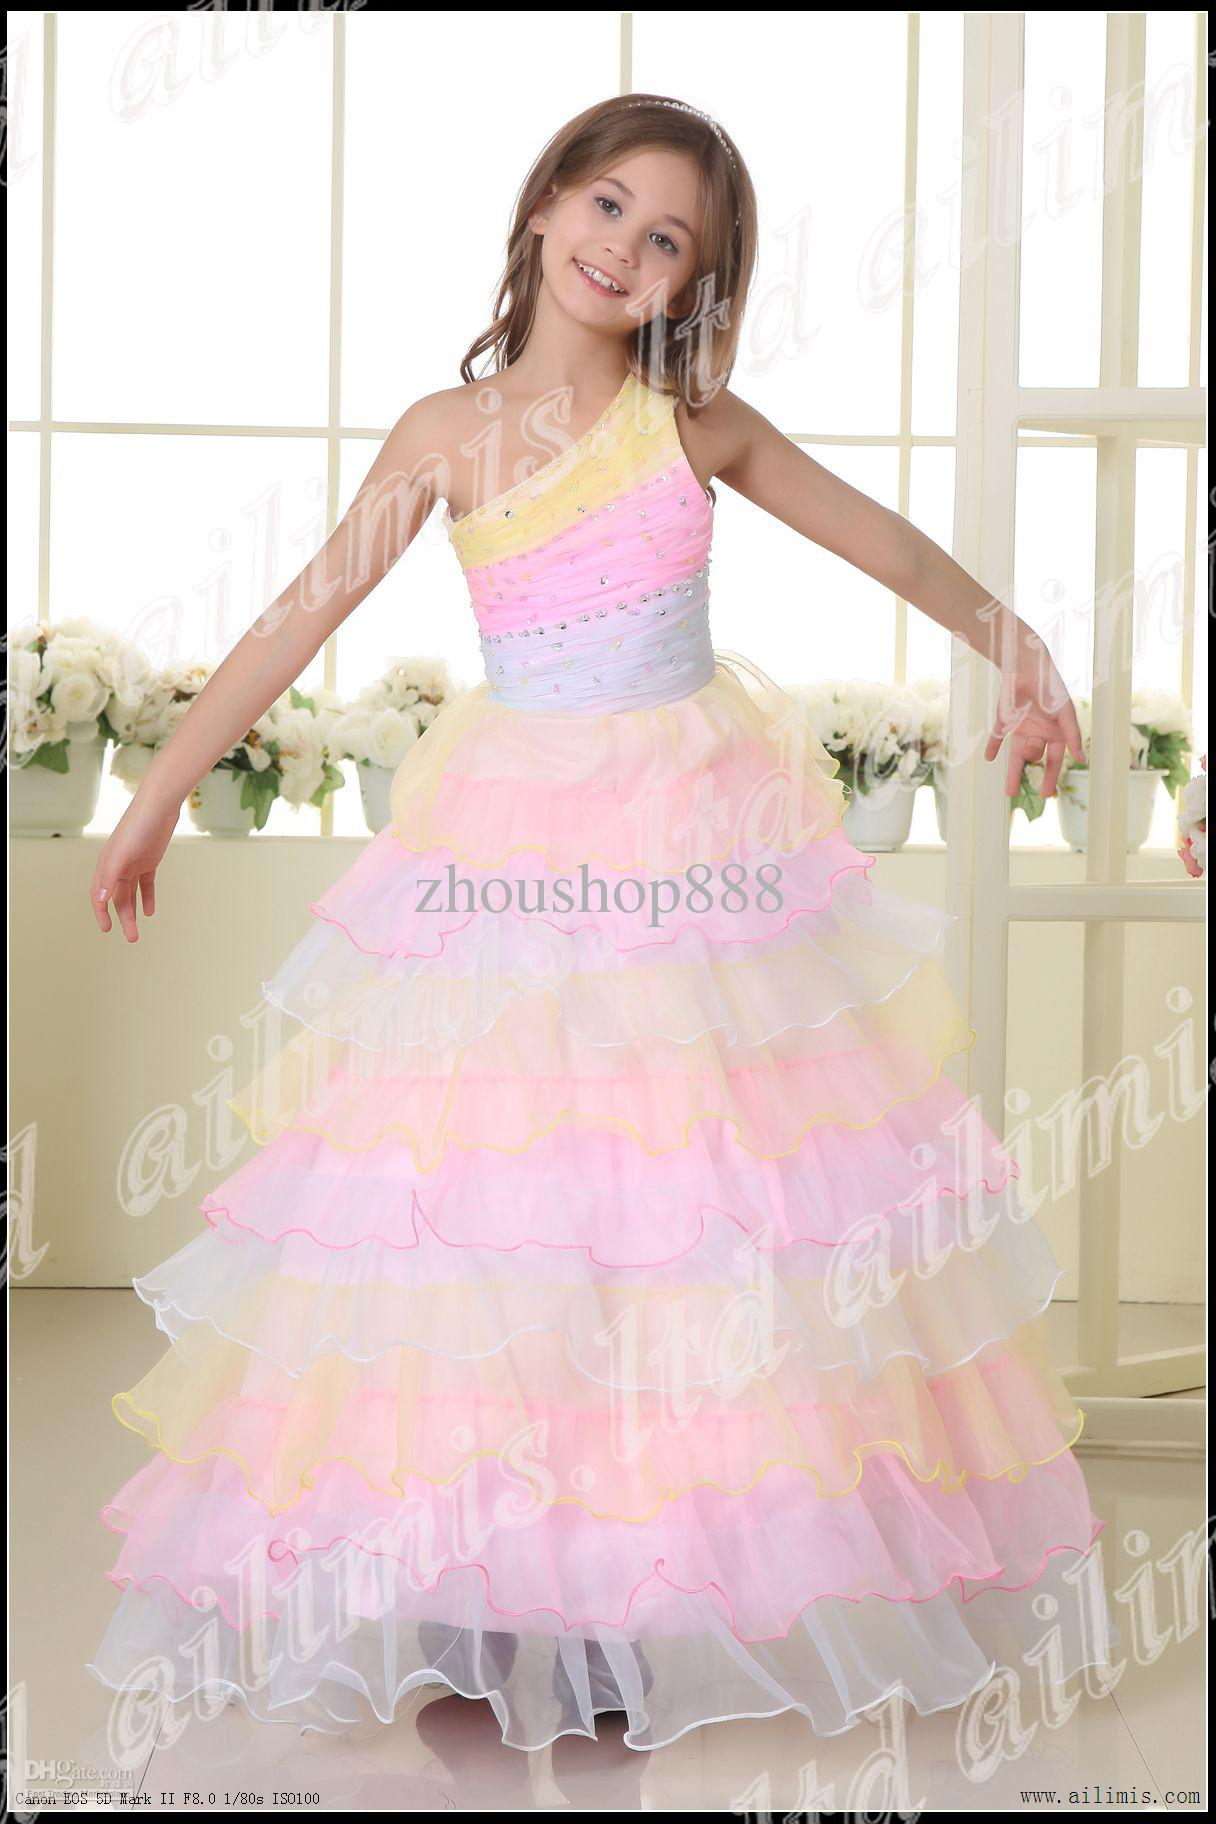 Kids bridesmaid dresses cheap choice image braidsmaid dress wedding dresses for girls and kids wedding ideas bridesmaid dresses for kids dress yp ombrellifo choice ombrellifo Gallery